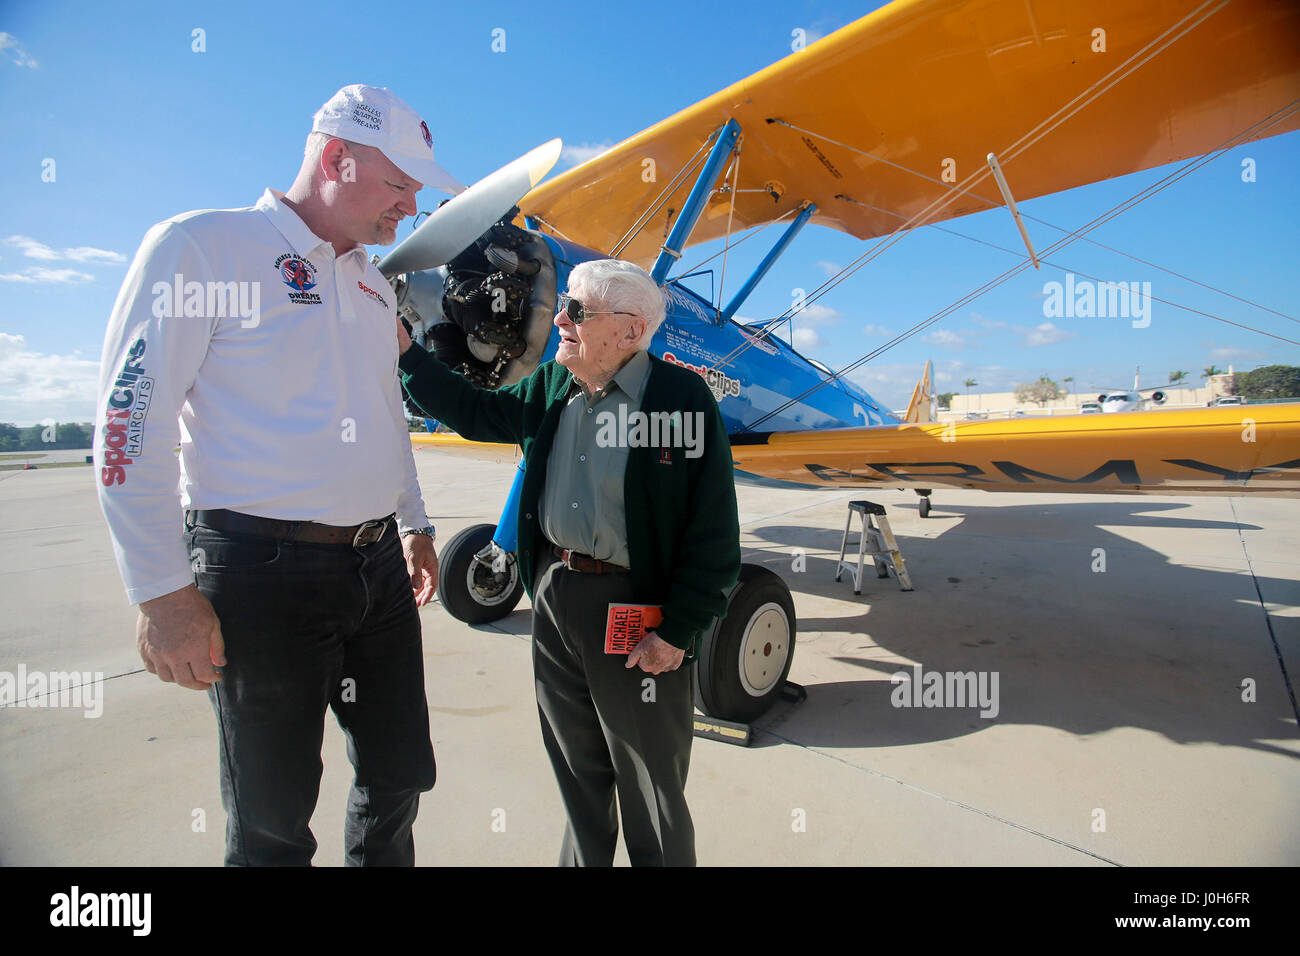 Florida, USA. 13th Apr, 2017. Duane Webster, age 95, talks with Darryl Fisher (Founder - President - Pilot of Ageless - Stock Image